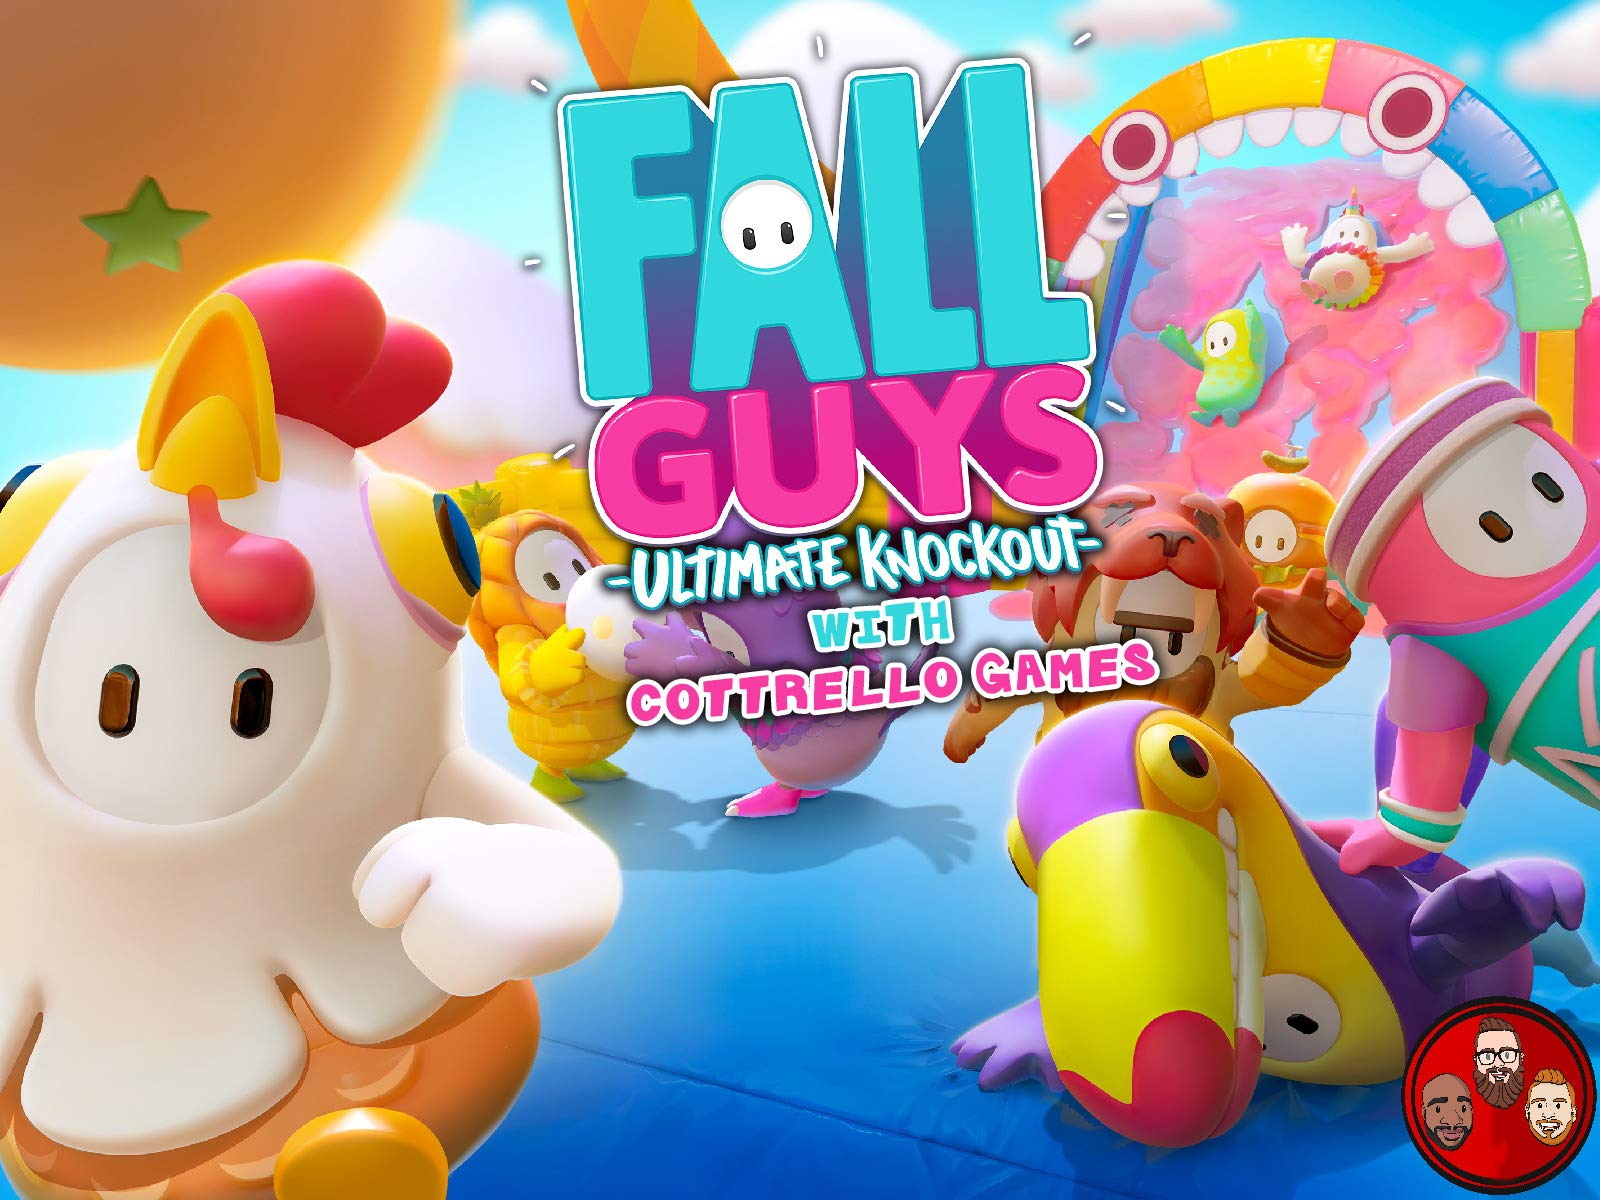 Fall Guys Ultimate Knockout with Cottrello Games